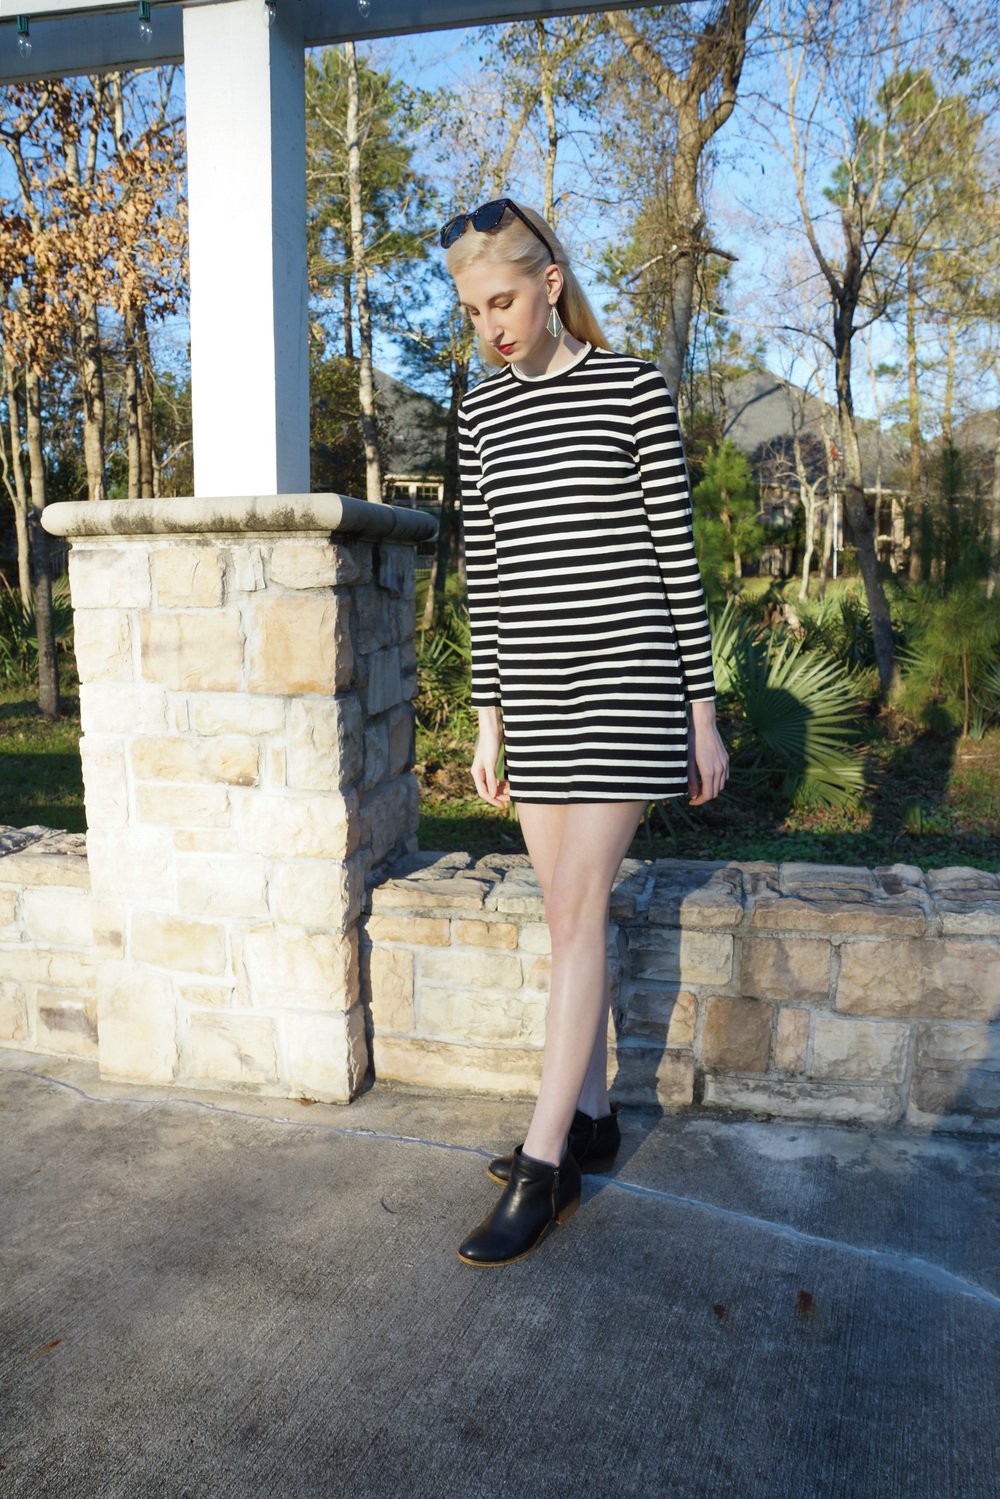 Forever 21 striped shift dress, steve madden black ankle boots, LOFT sunglasses, target earrings, Elizabeth Arden lipstick